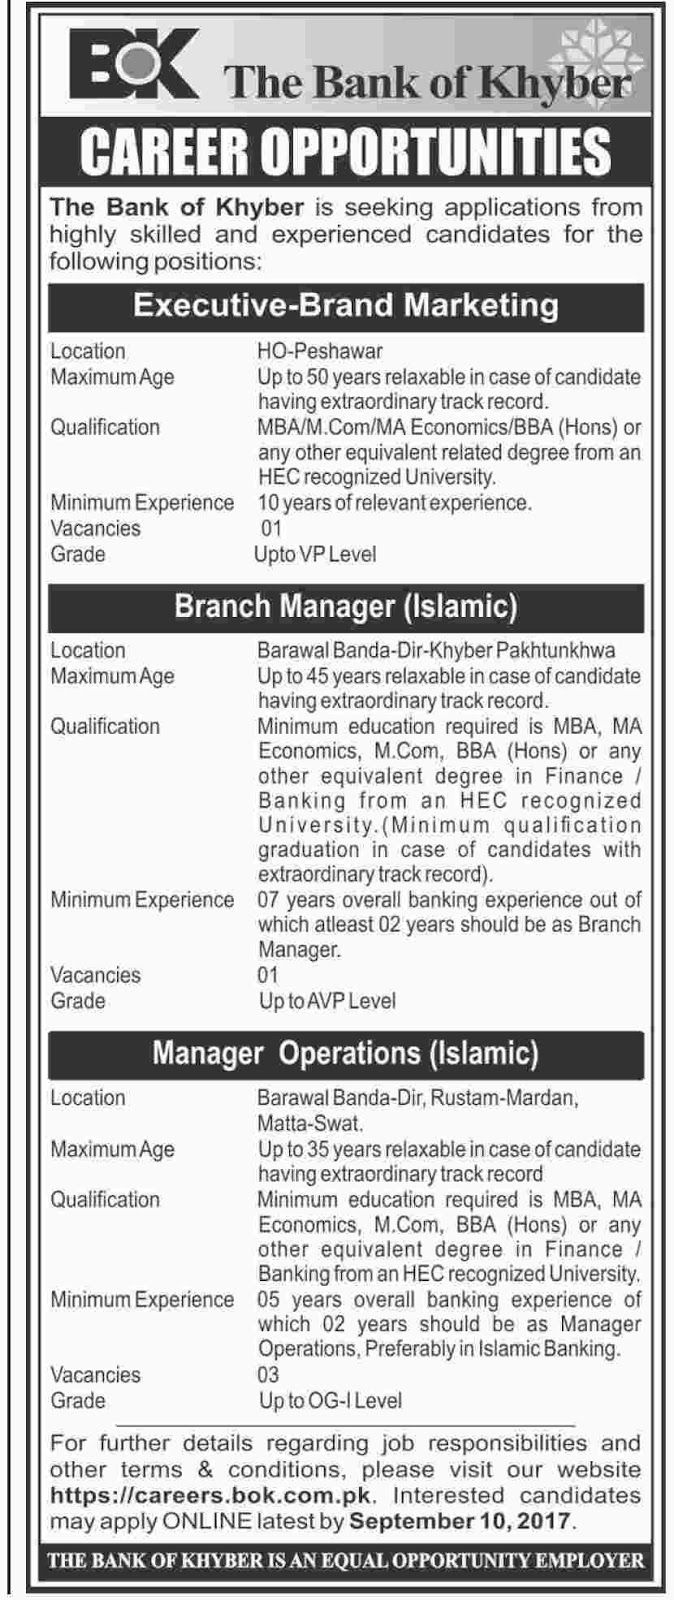 Career Opportunities in The Bank of Khyber Apply online http://ift.tt/2vDtXdf   The Bank of Khyber  Last Date:  10 Sept   2017  Location:  KPK  Posted   on:  28 Aug   2017  Category:  Private  Organization:  Banking   Website/Email:  Careers.bok.com.pk  No.   of Vacancies  05  Education   required:  Masters MBA  How   to Apply:  Online  Vacant Positions:  Manager Operations Islamic  Executive Brand Marketing  Branch Manager  Online Apply Click Here  Newspaper Ad:       Instructions:  Only…